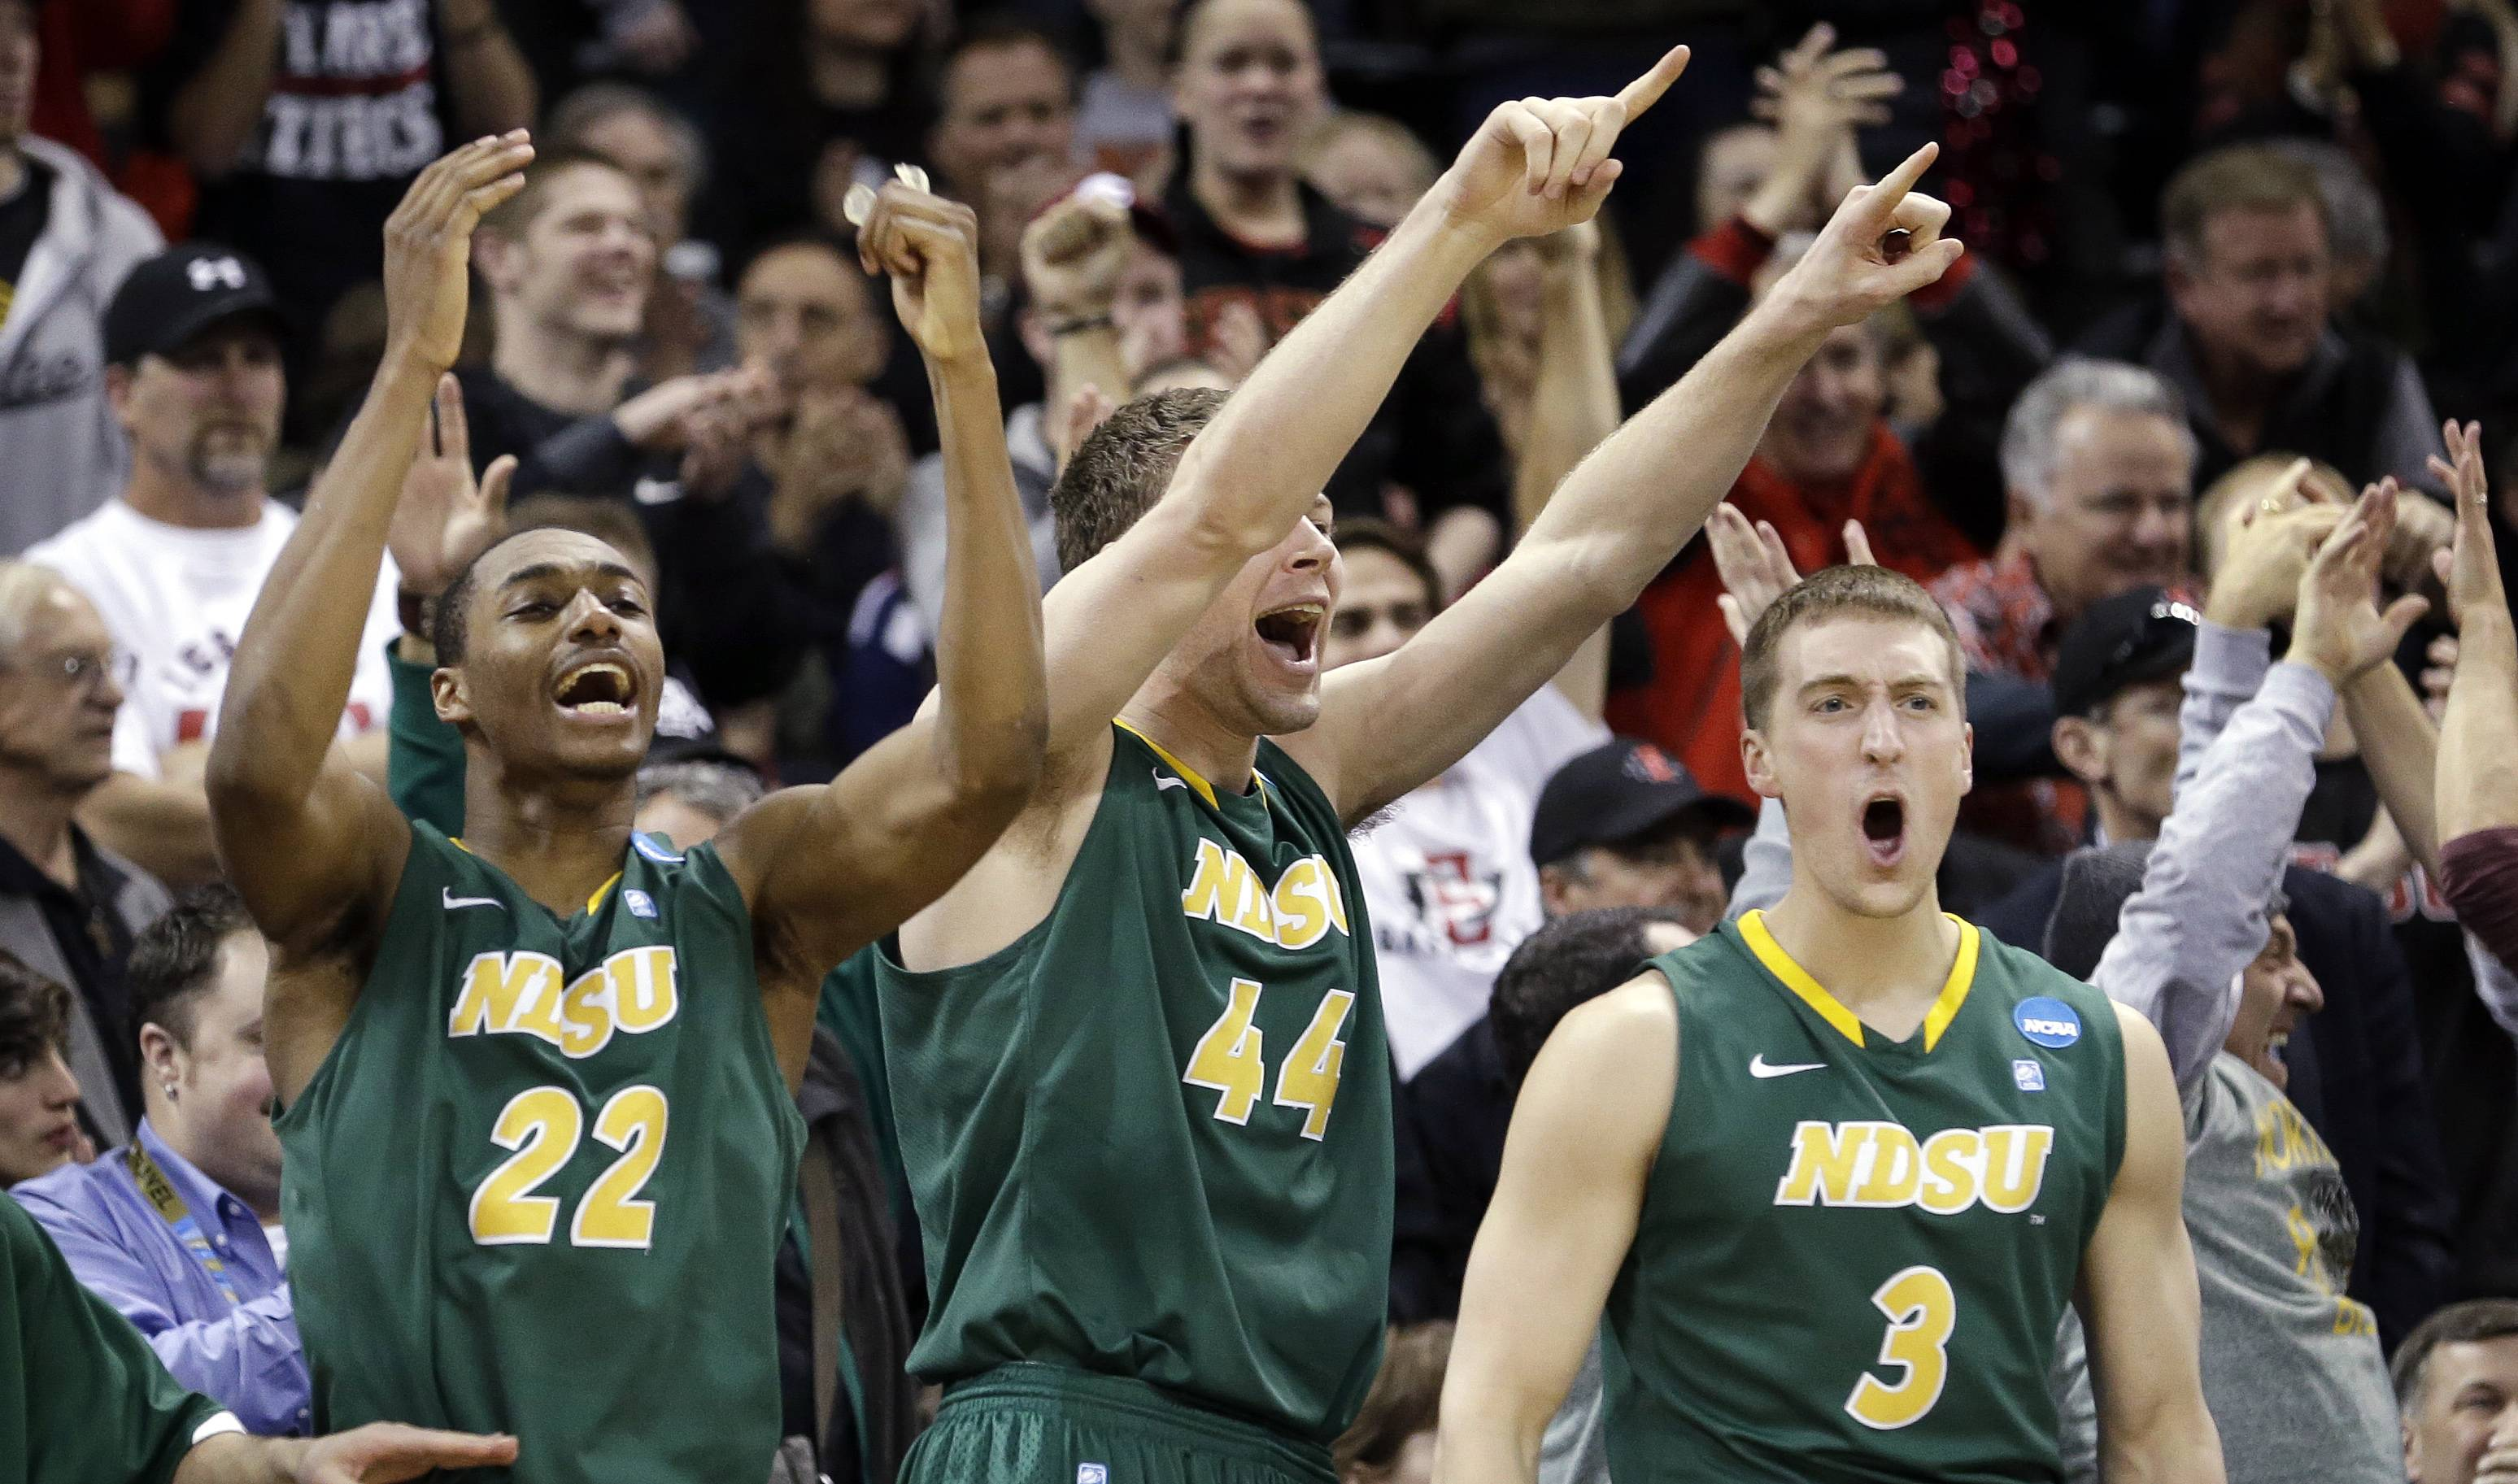 NDSU stuns Oklahoma, as 12 seeds continue run